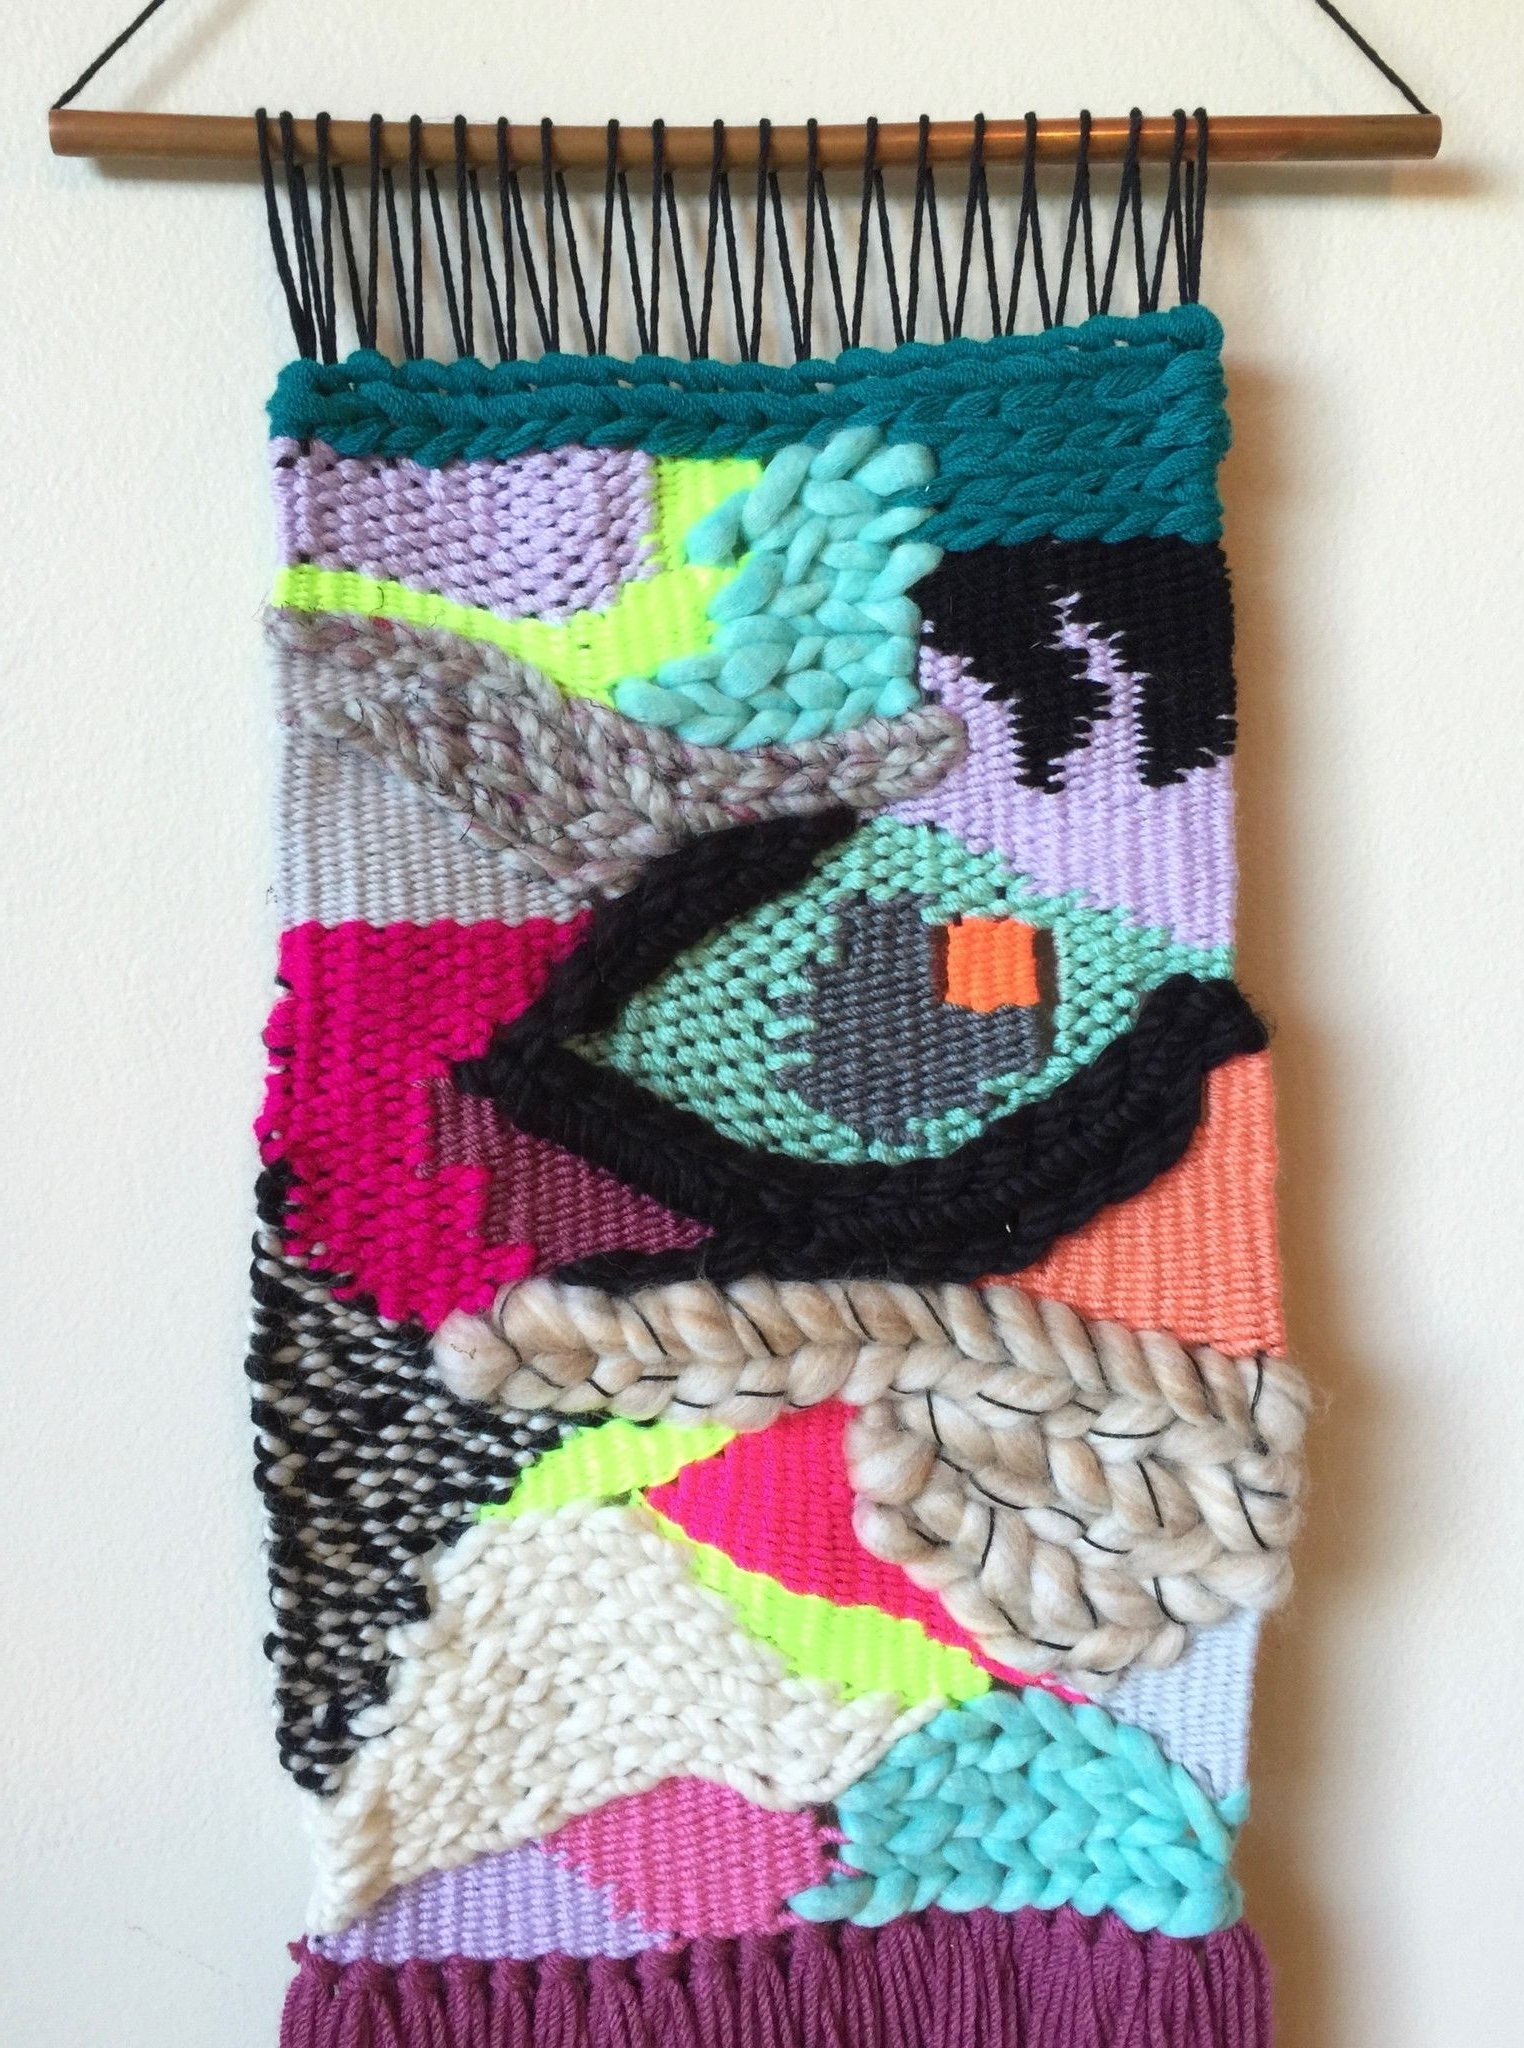 Weaving Woven Wall Hanging Fiber Art Textile Art (View 7 of 15)